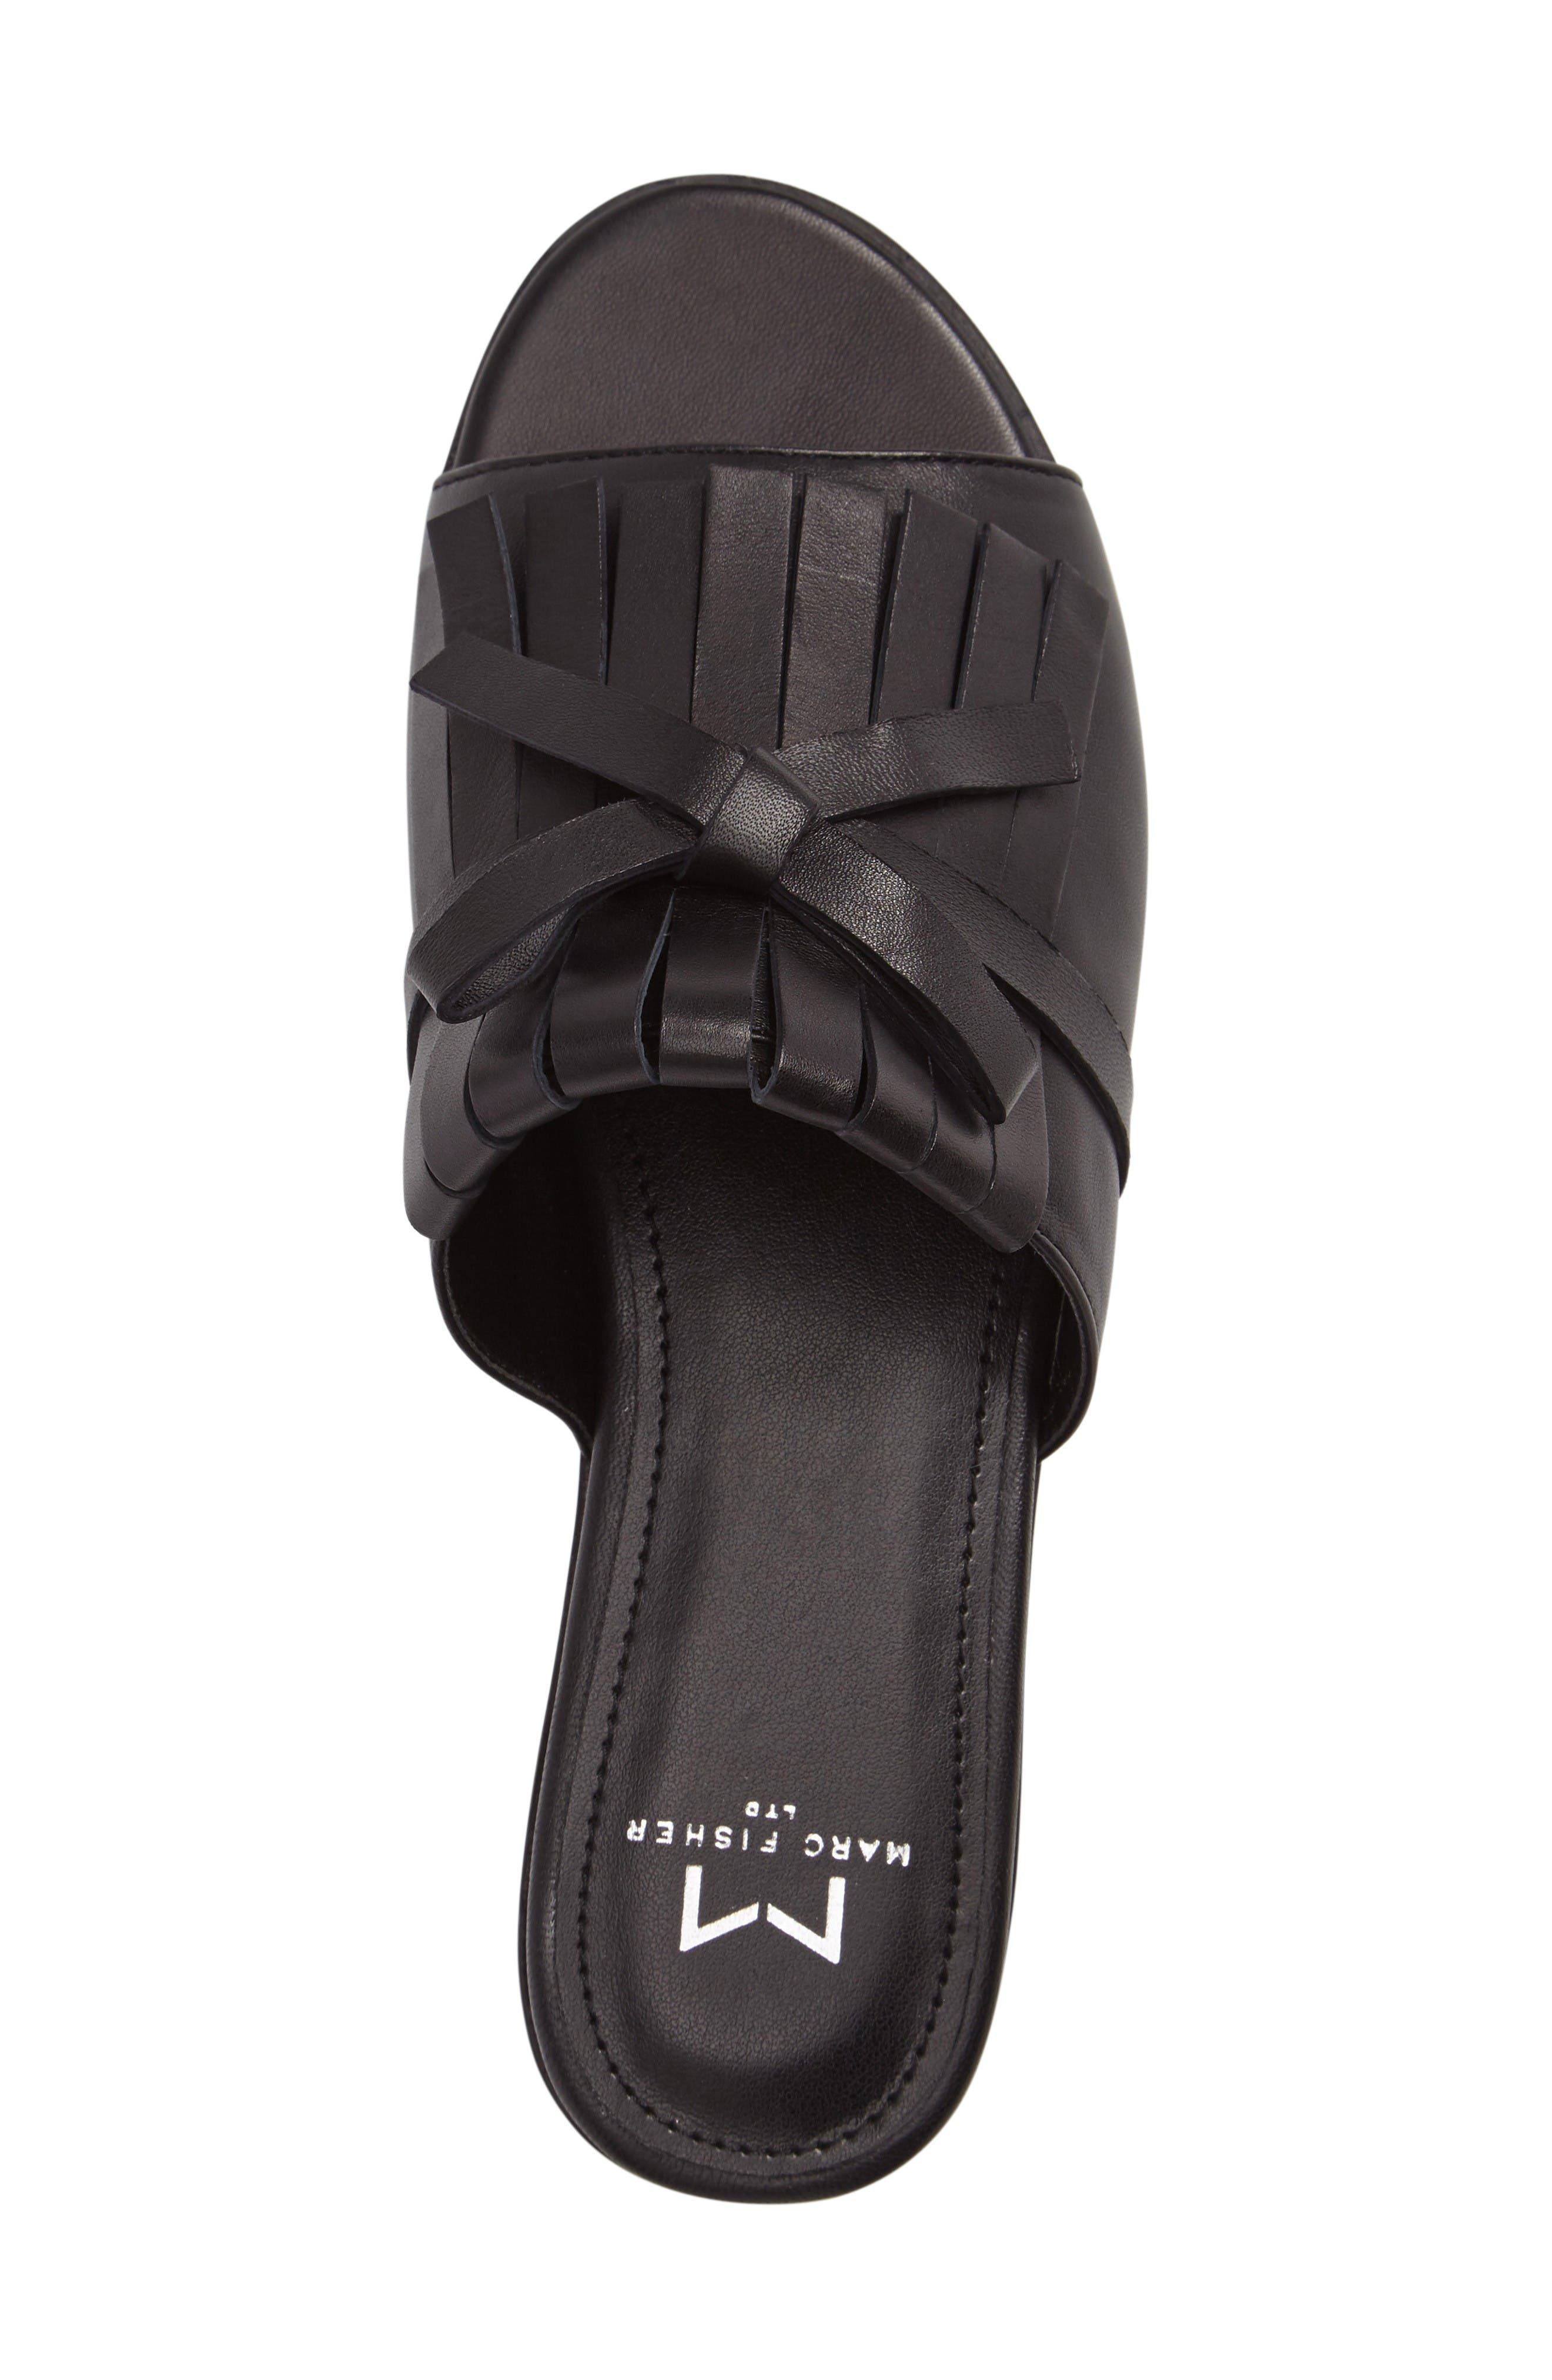 Whitley Slide Sandal,                             Alternate thumbnail 9, color,                             001